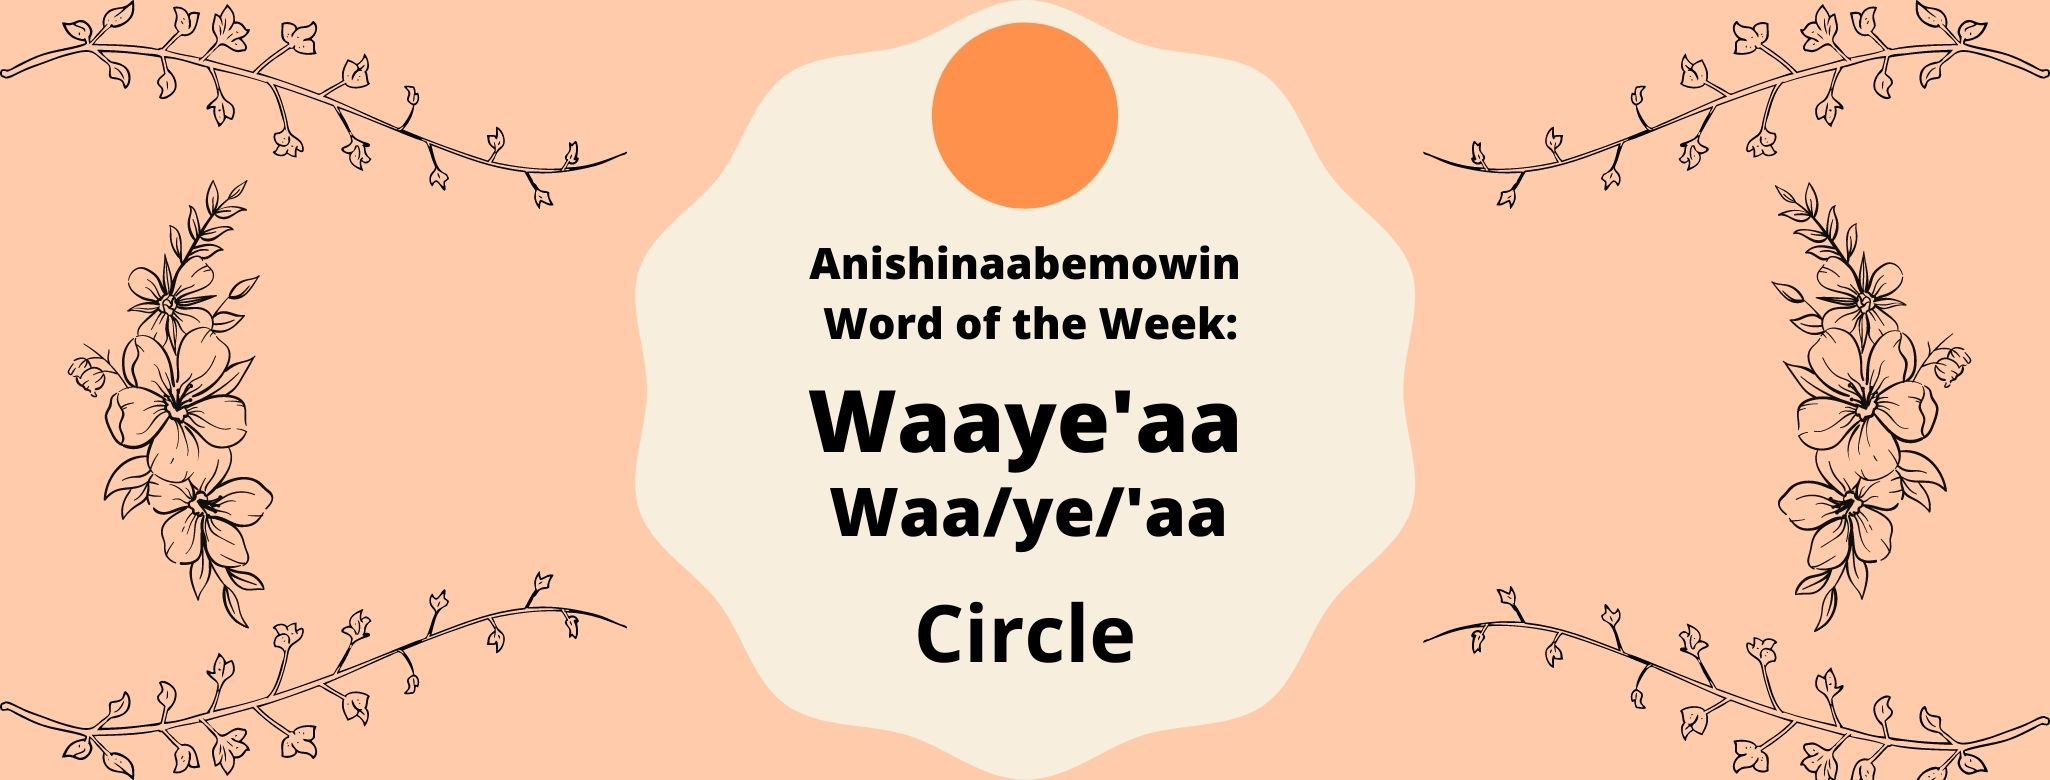 Anishinaabemowin Word of the Week Circle